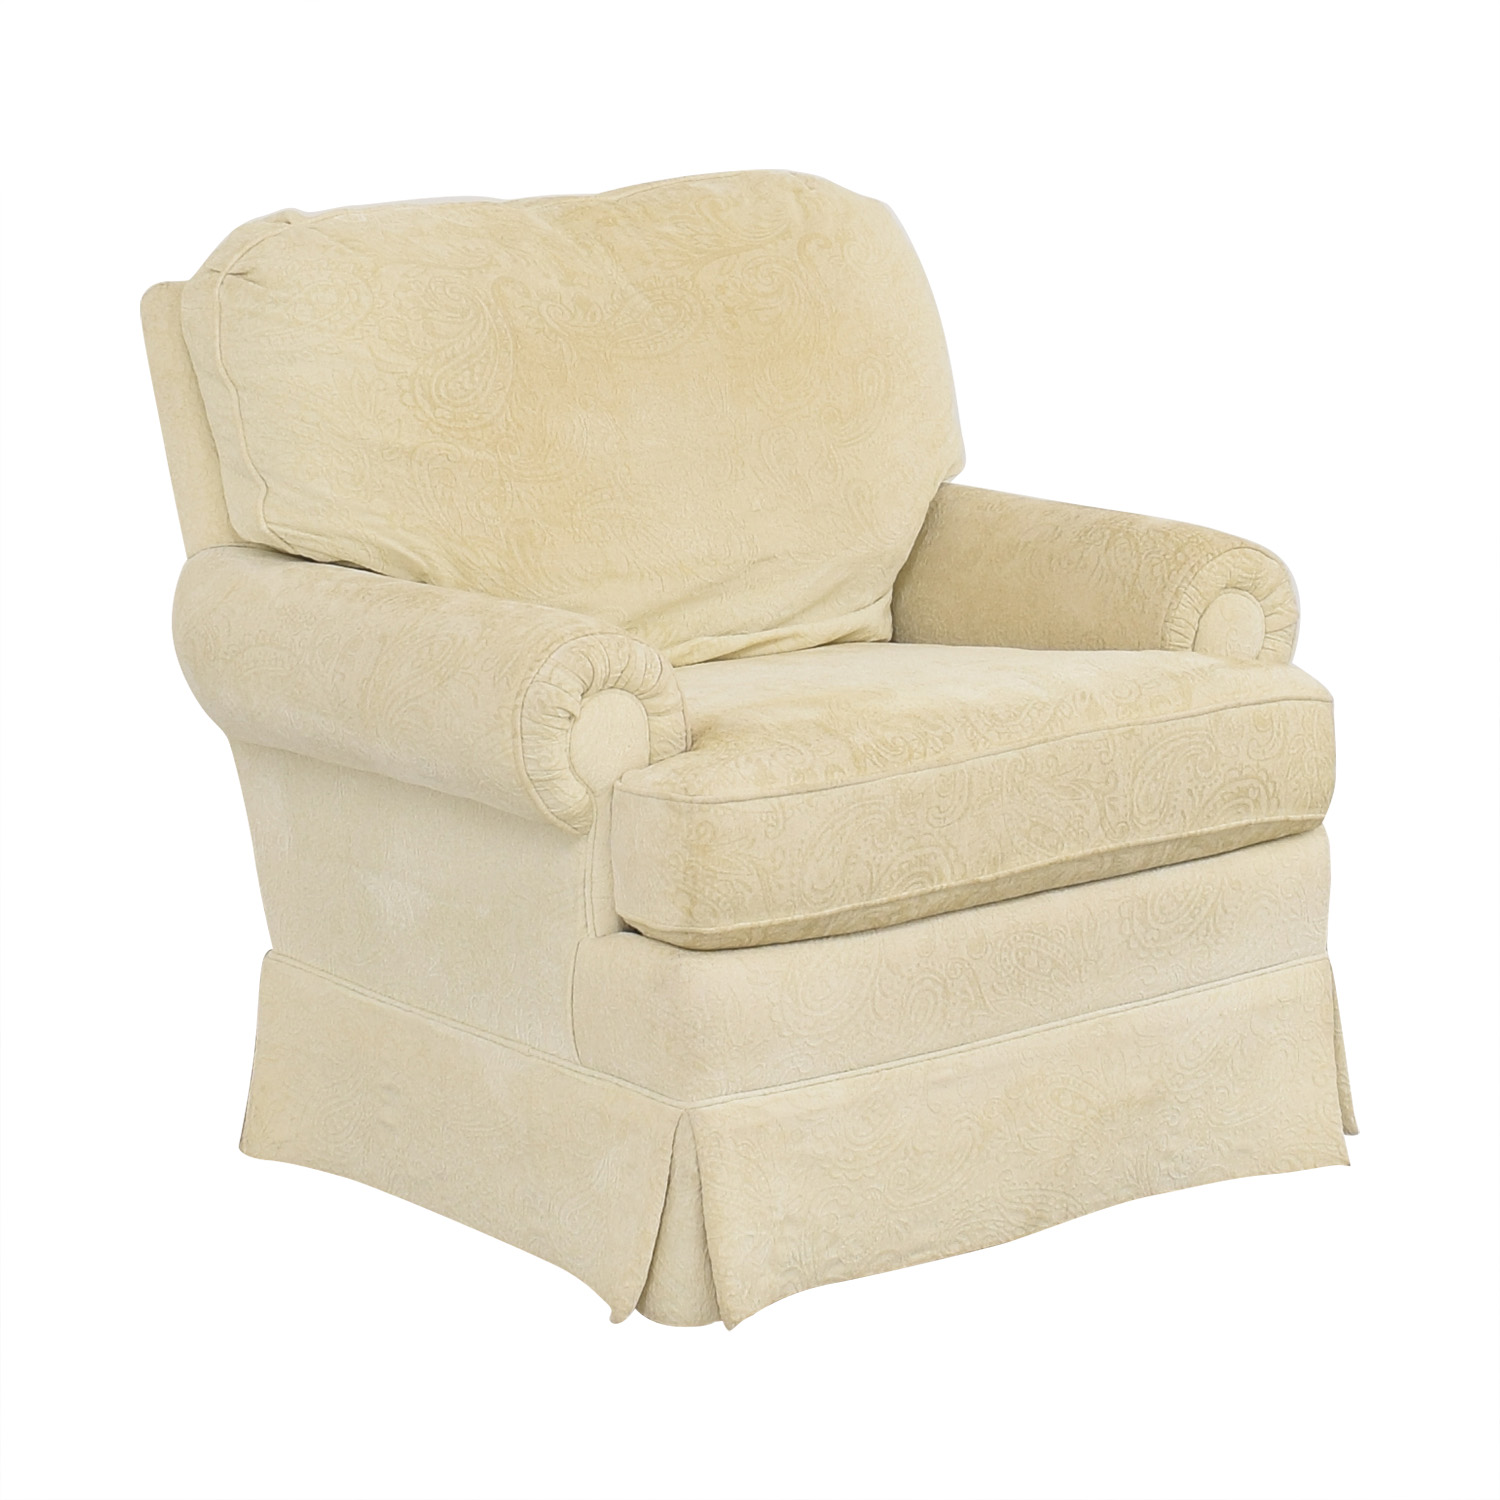 shop Best Chairs Braxton Swivel Glider and Ottoman Best Chairs Chairs